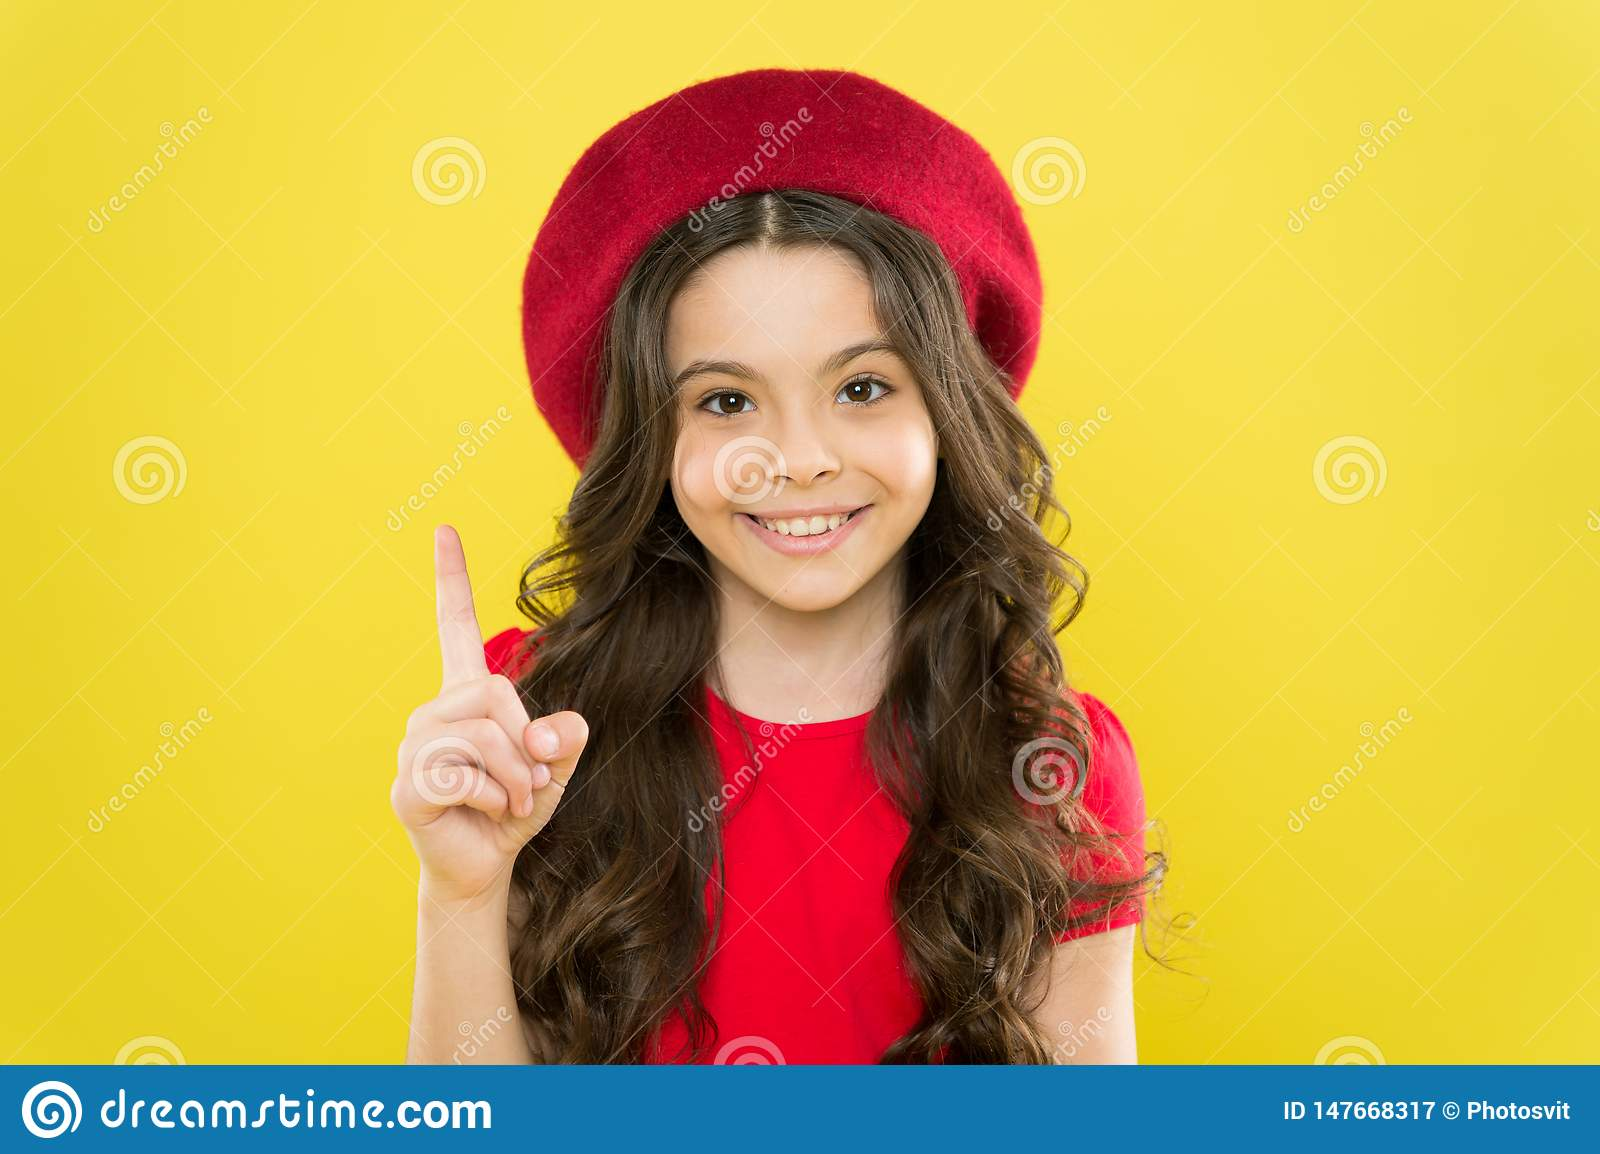 Playful teen model. Acting skills concept. Tips and tricks to loosen up in front of camera. Acting school for children